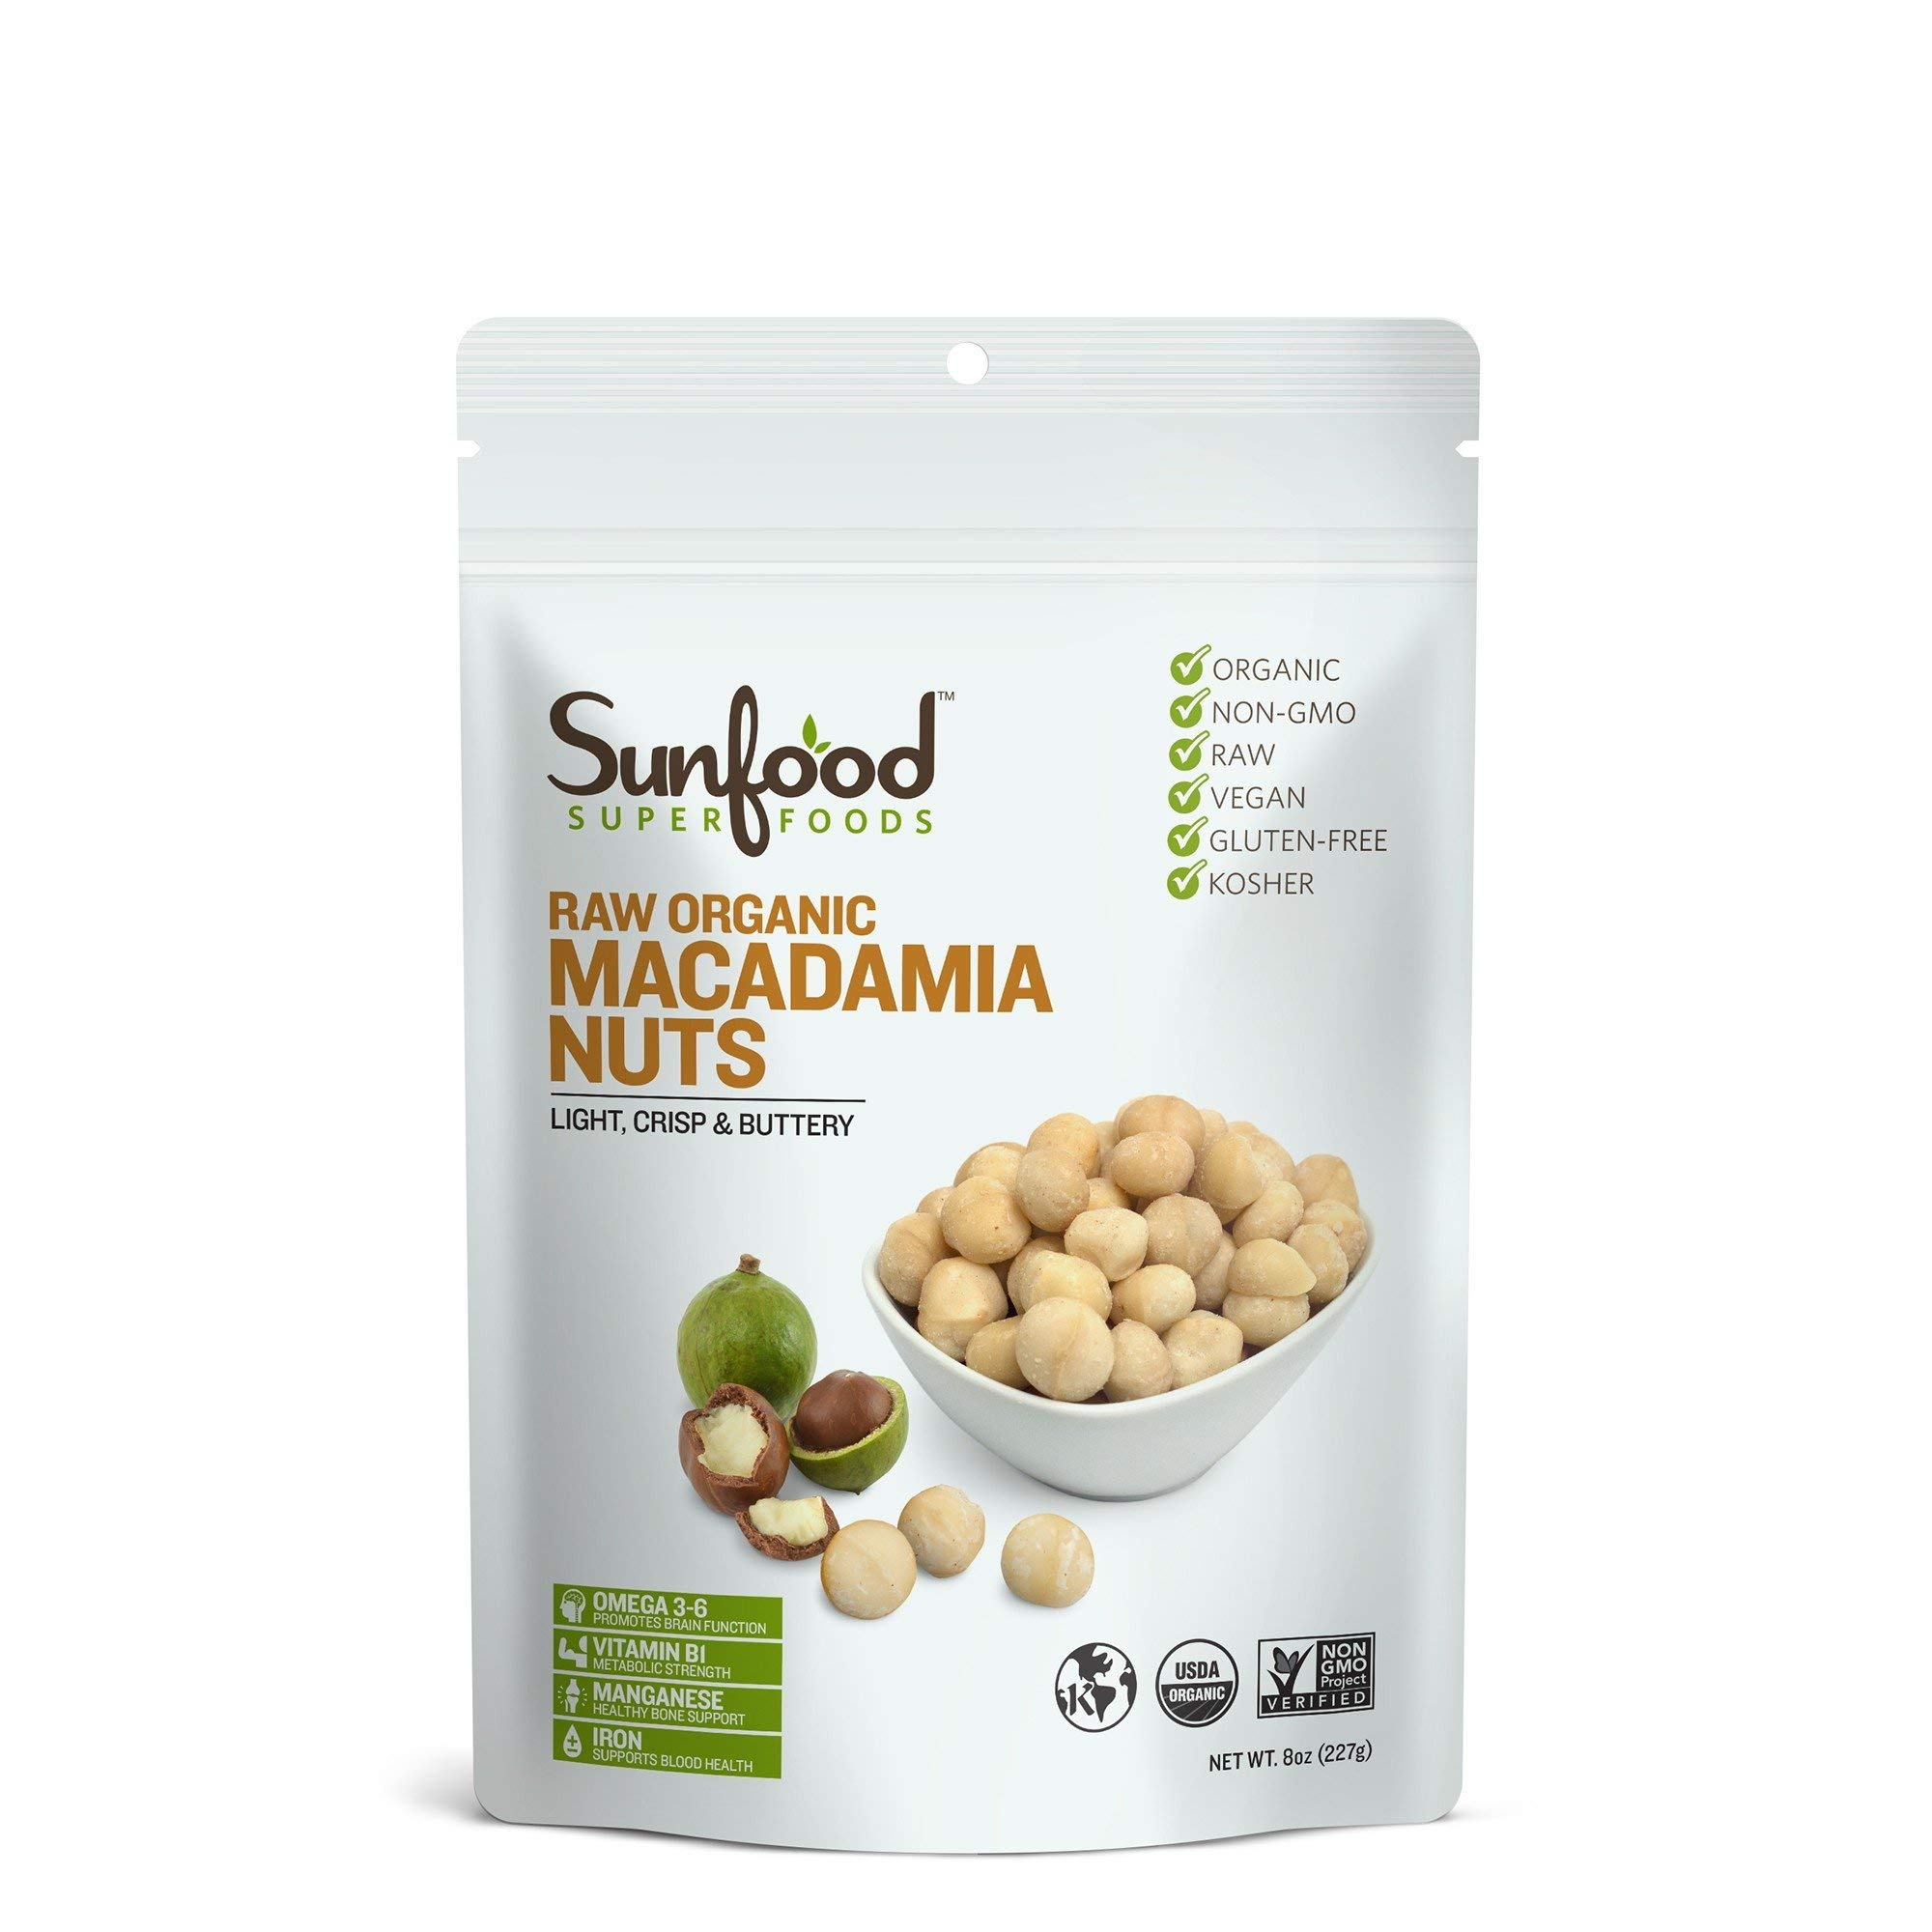 Sunfood Superfoods Macadamia Nuts- Raw Organic. 8 oz Bag by Sunfood Superfoods